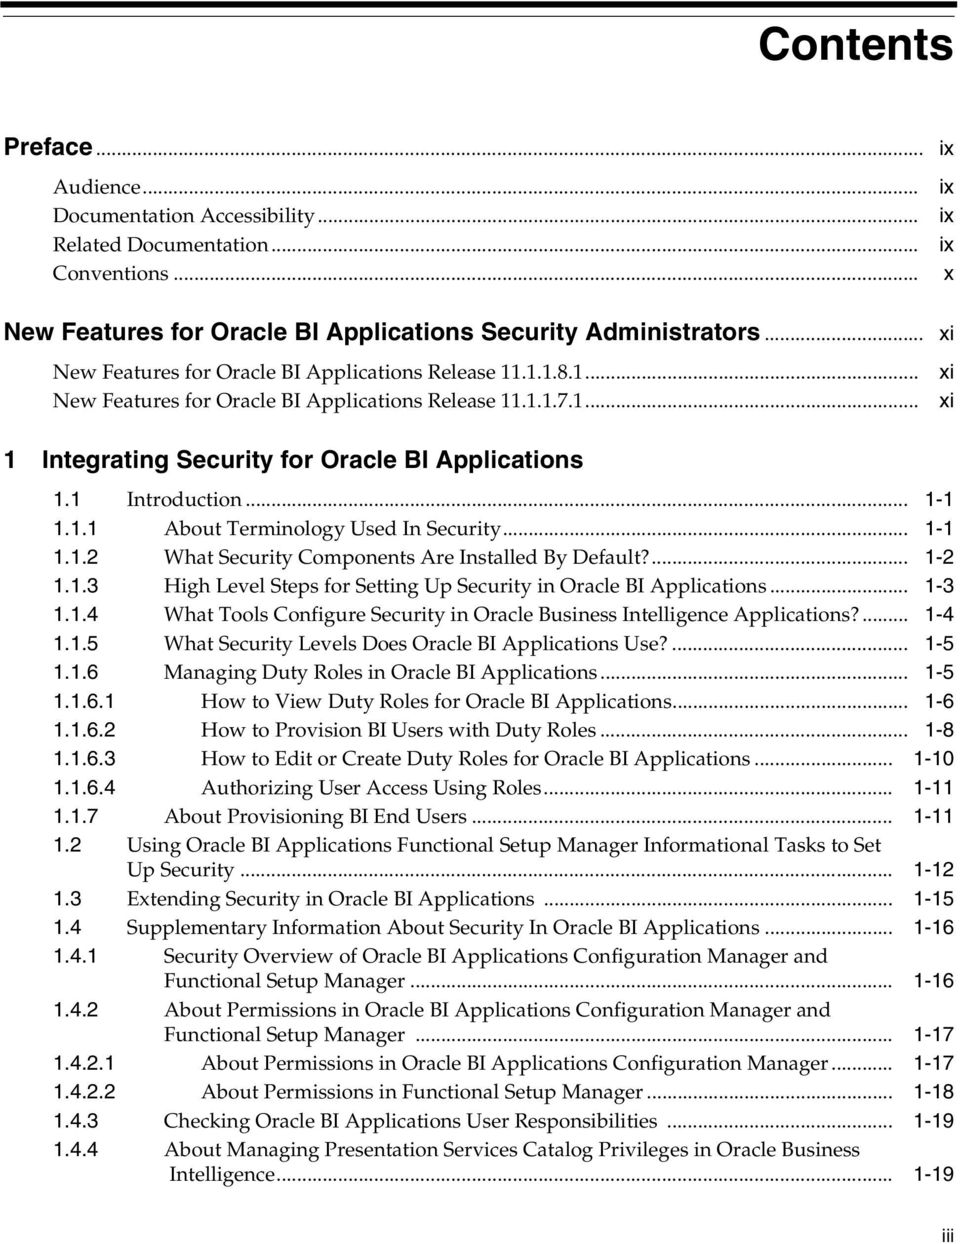 1 Introduction... 1-1 1.1.1 About Terminology Used In Security... 1-1 1.1.2 What Security Components Are Installed By Default?... 1-2 1.1.3 High Level Steps for Setting Up Security in Oracle BI Applications.